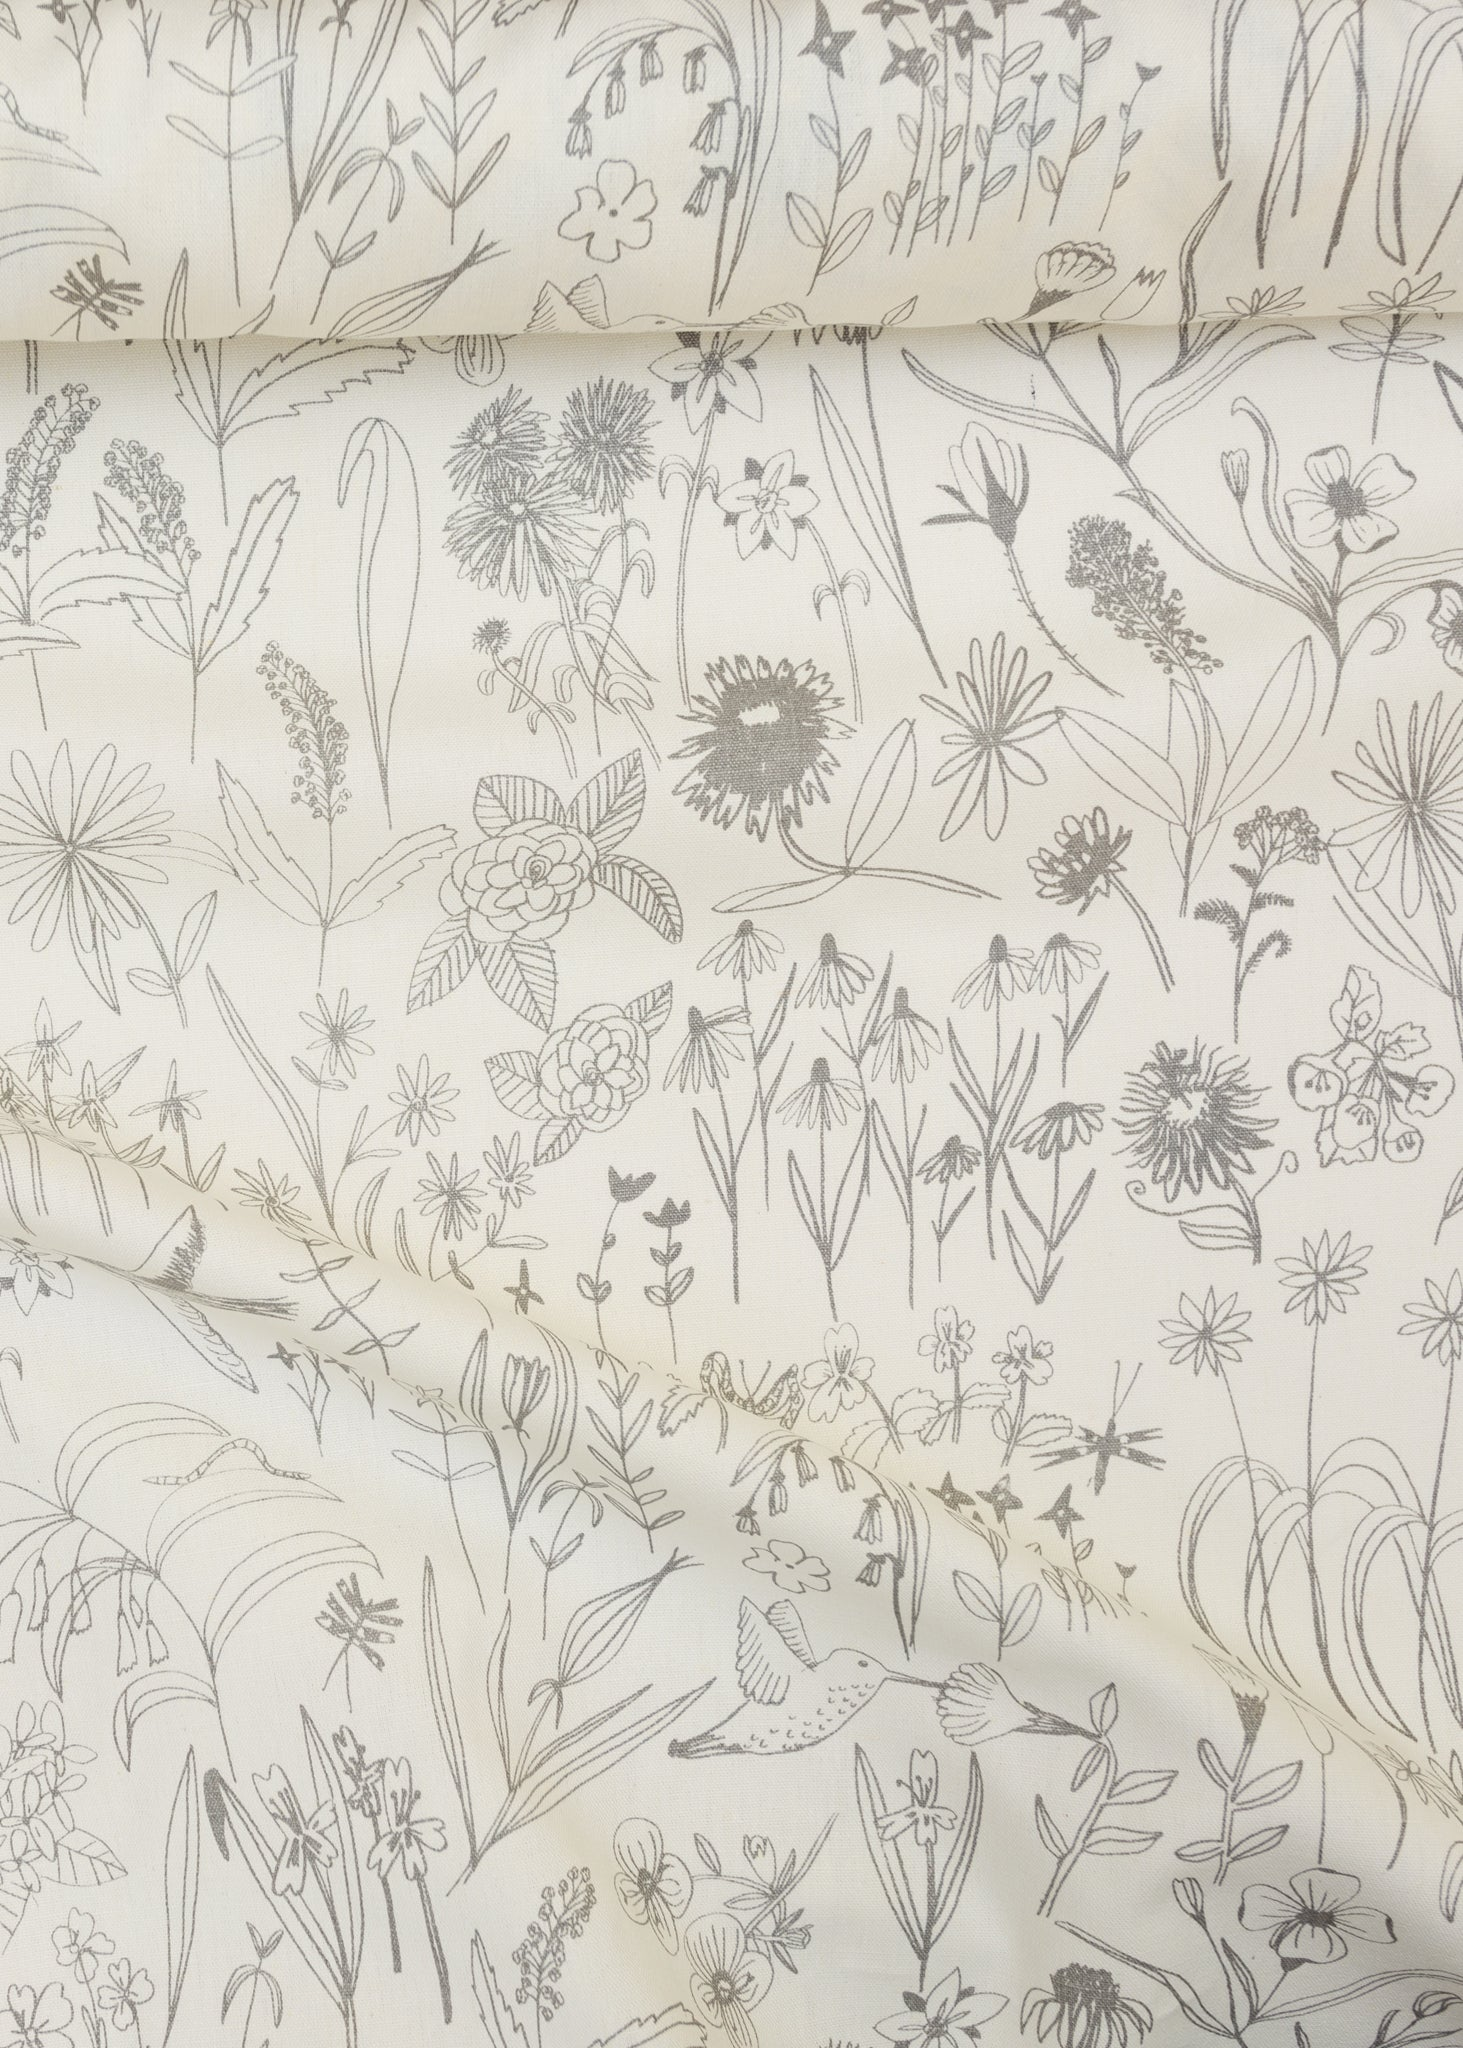 Screen printed fabric yardage with bird and botanical illustrations